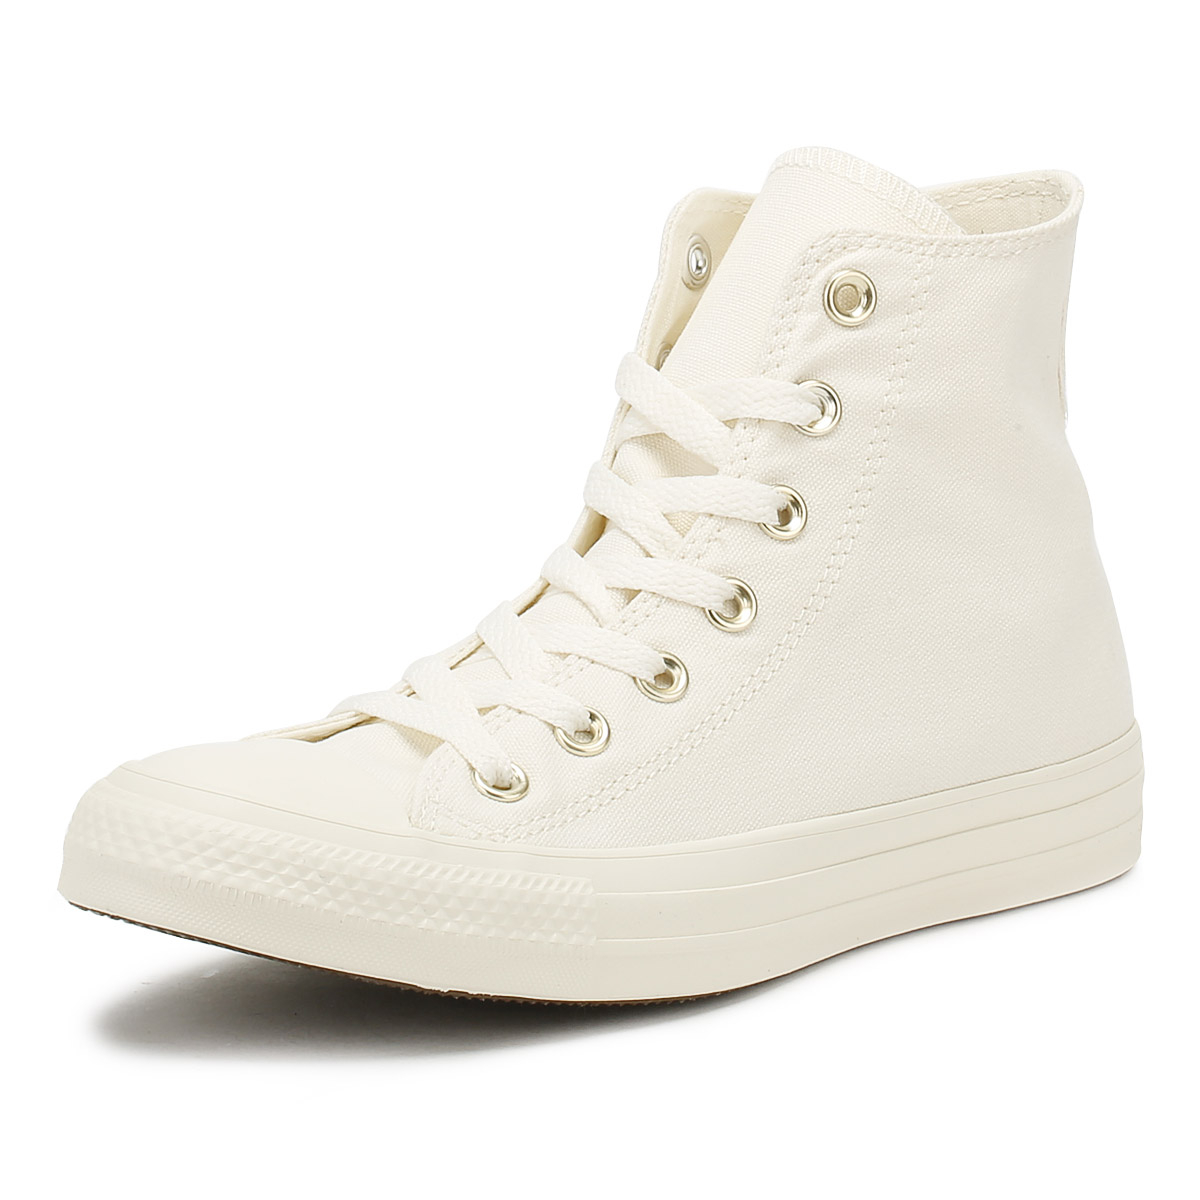 24721e791d16 Details about Converse Chuck Taylor All Star Womens Hi Trainers Egret    Gold Lace Up Shoes